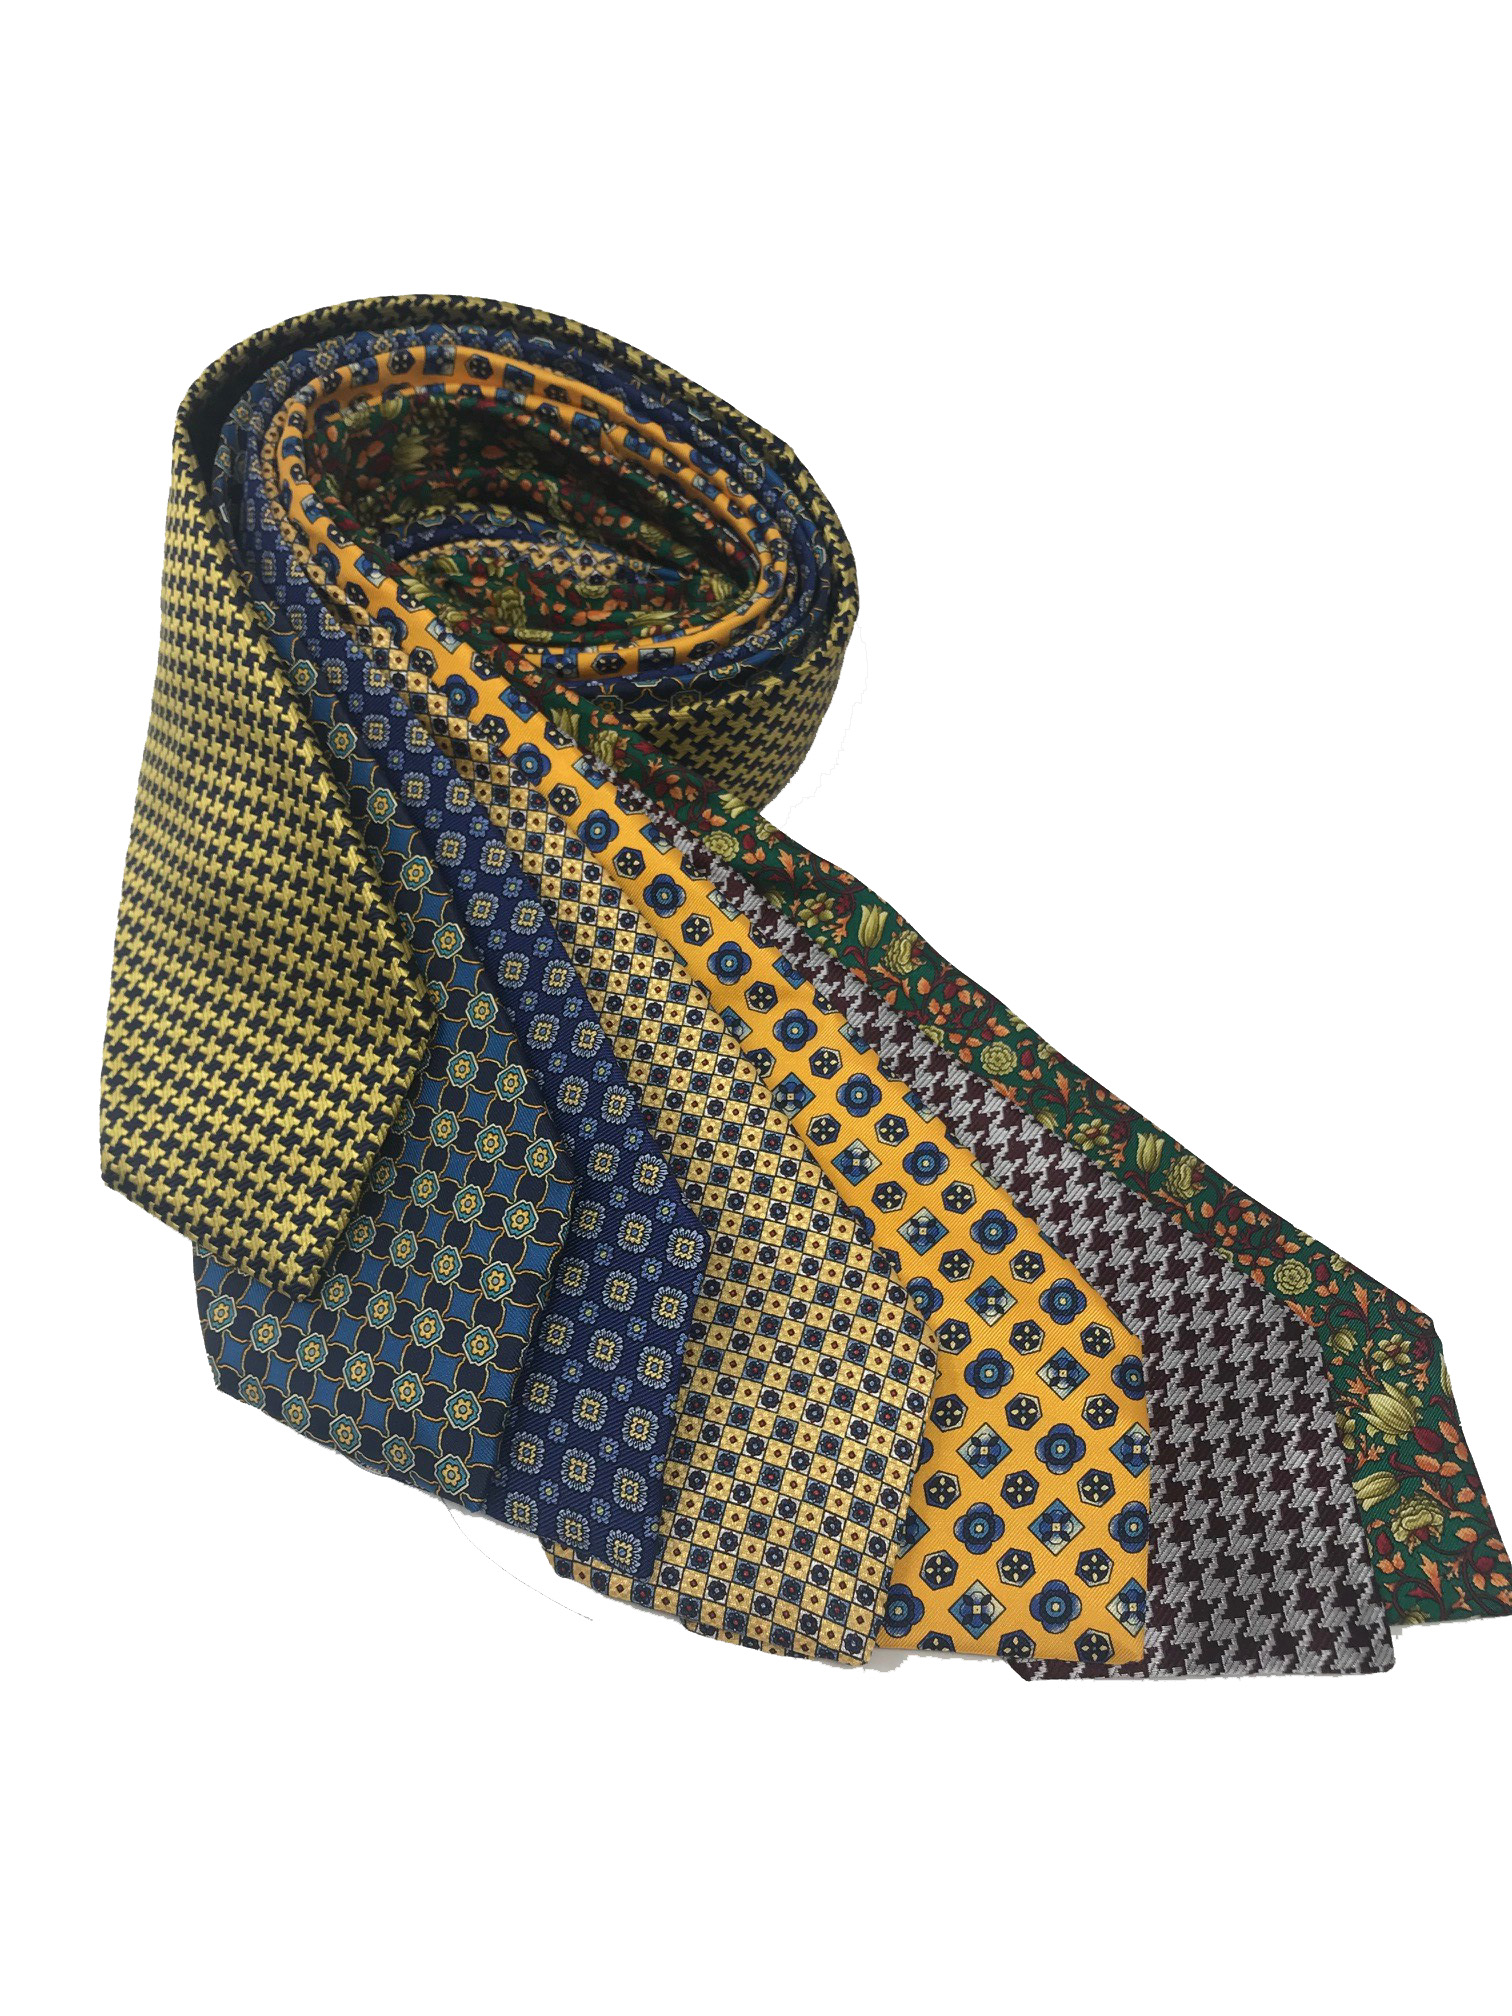 Cavenagh of London 7Piece 100% Pure Silk Ties Made in UK (705D)RRP£139.99